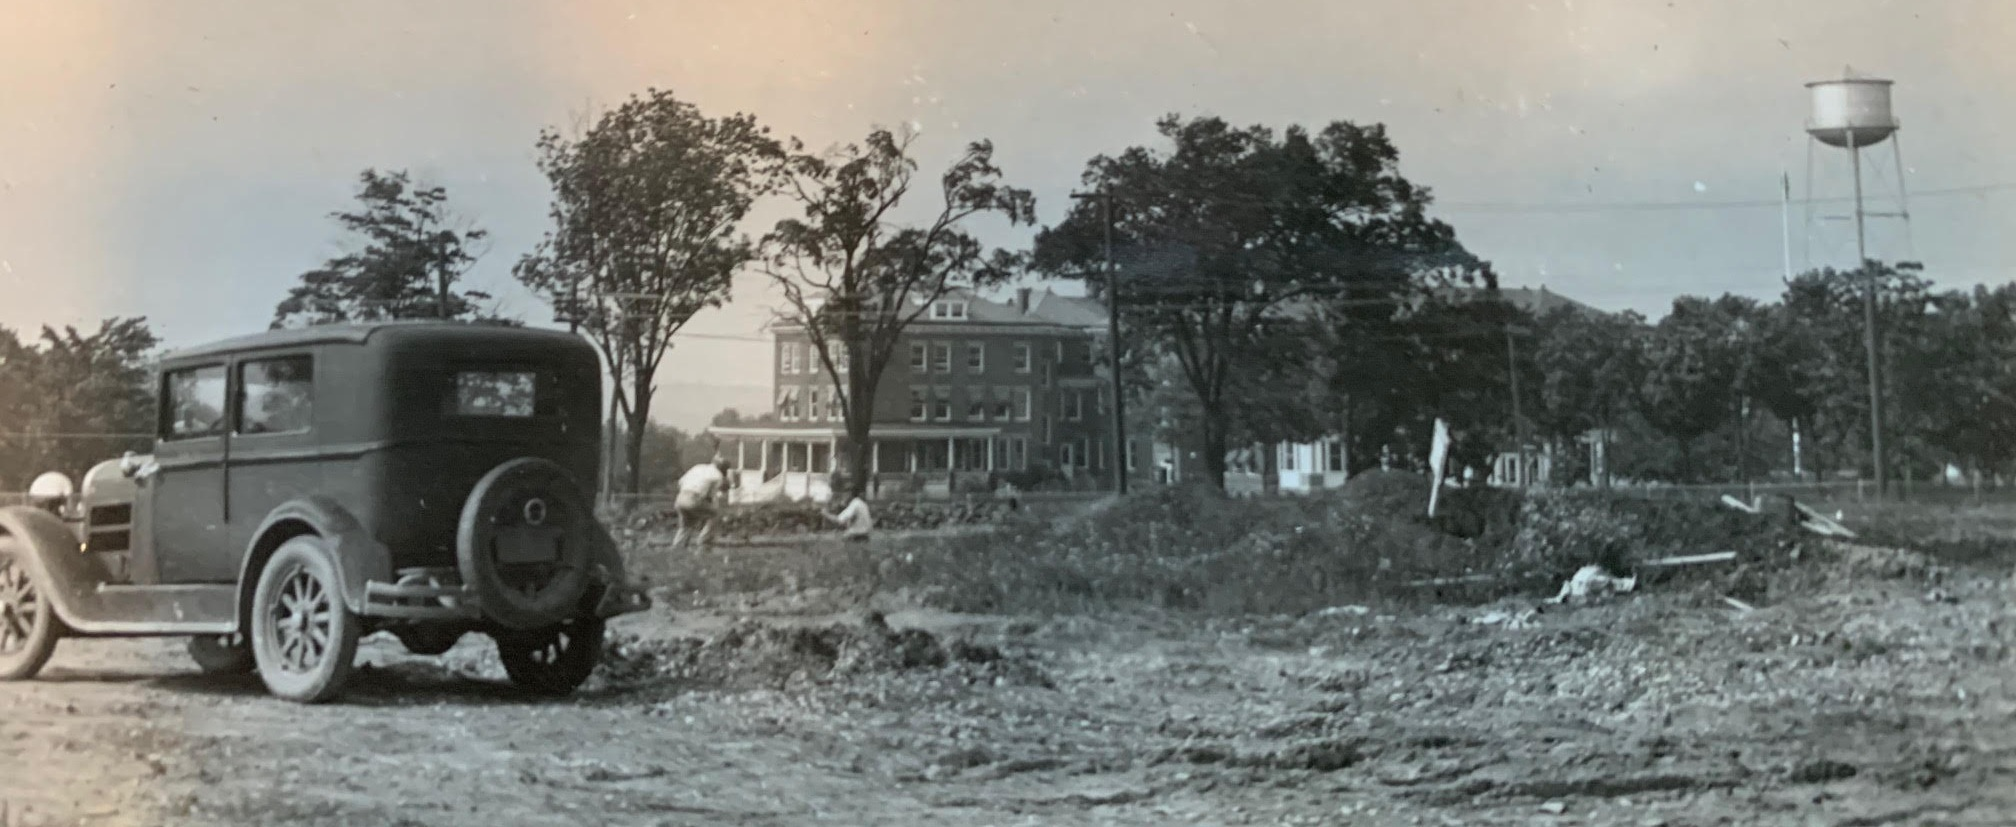 The early days of construction for Hudson's new high school. In the background is the former Firemen's Home.